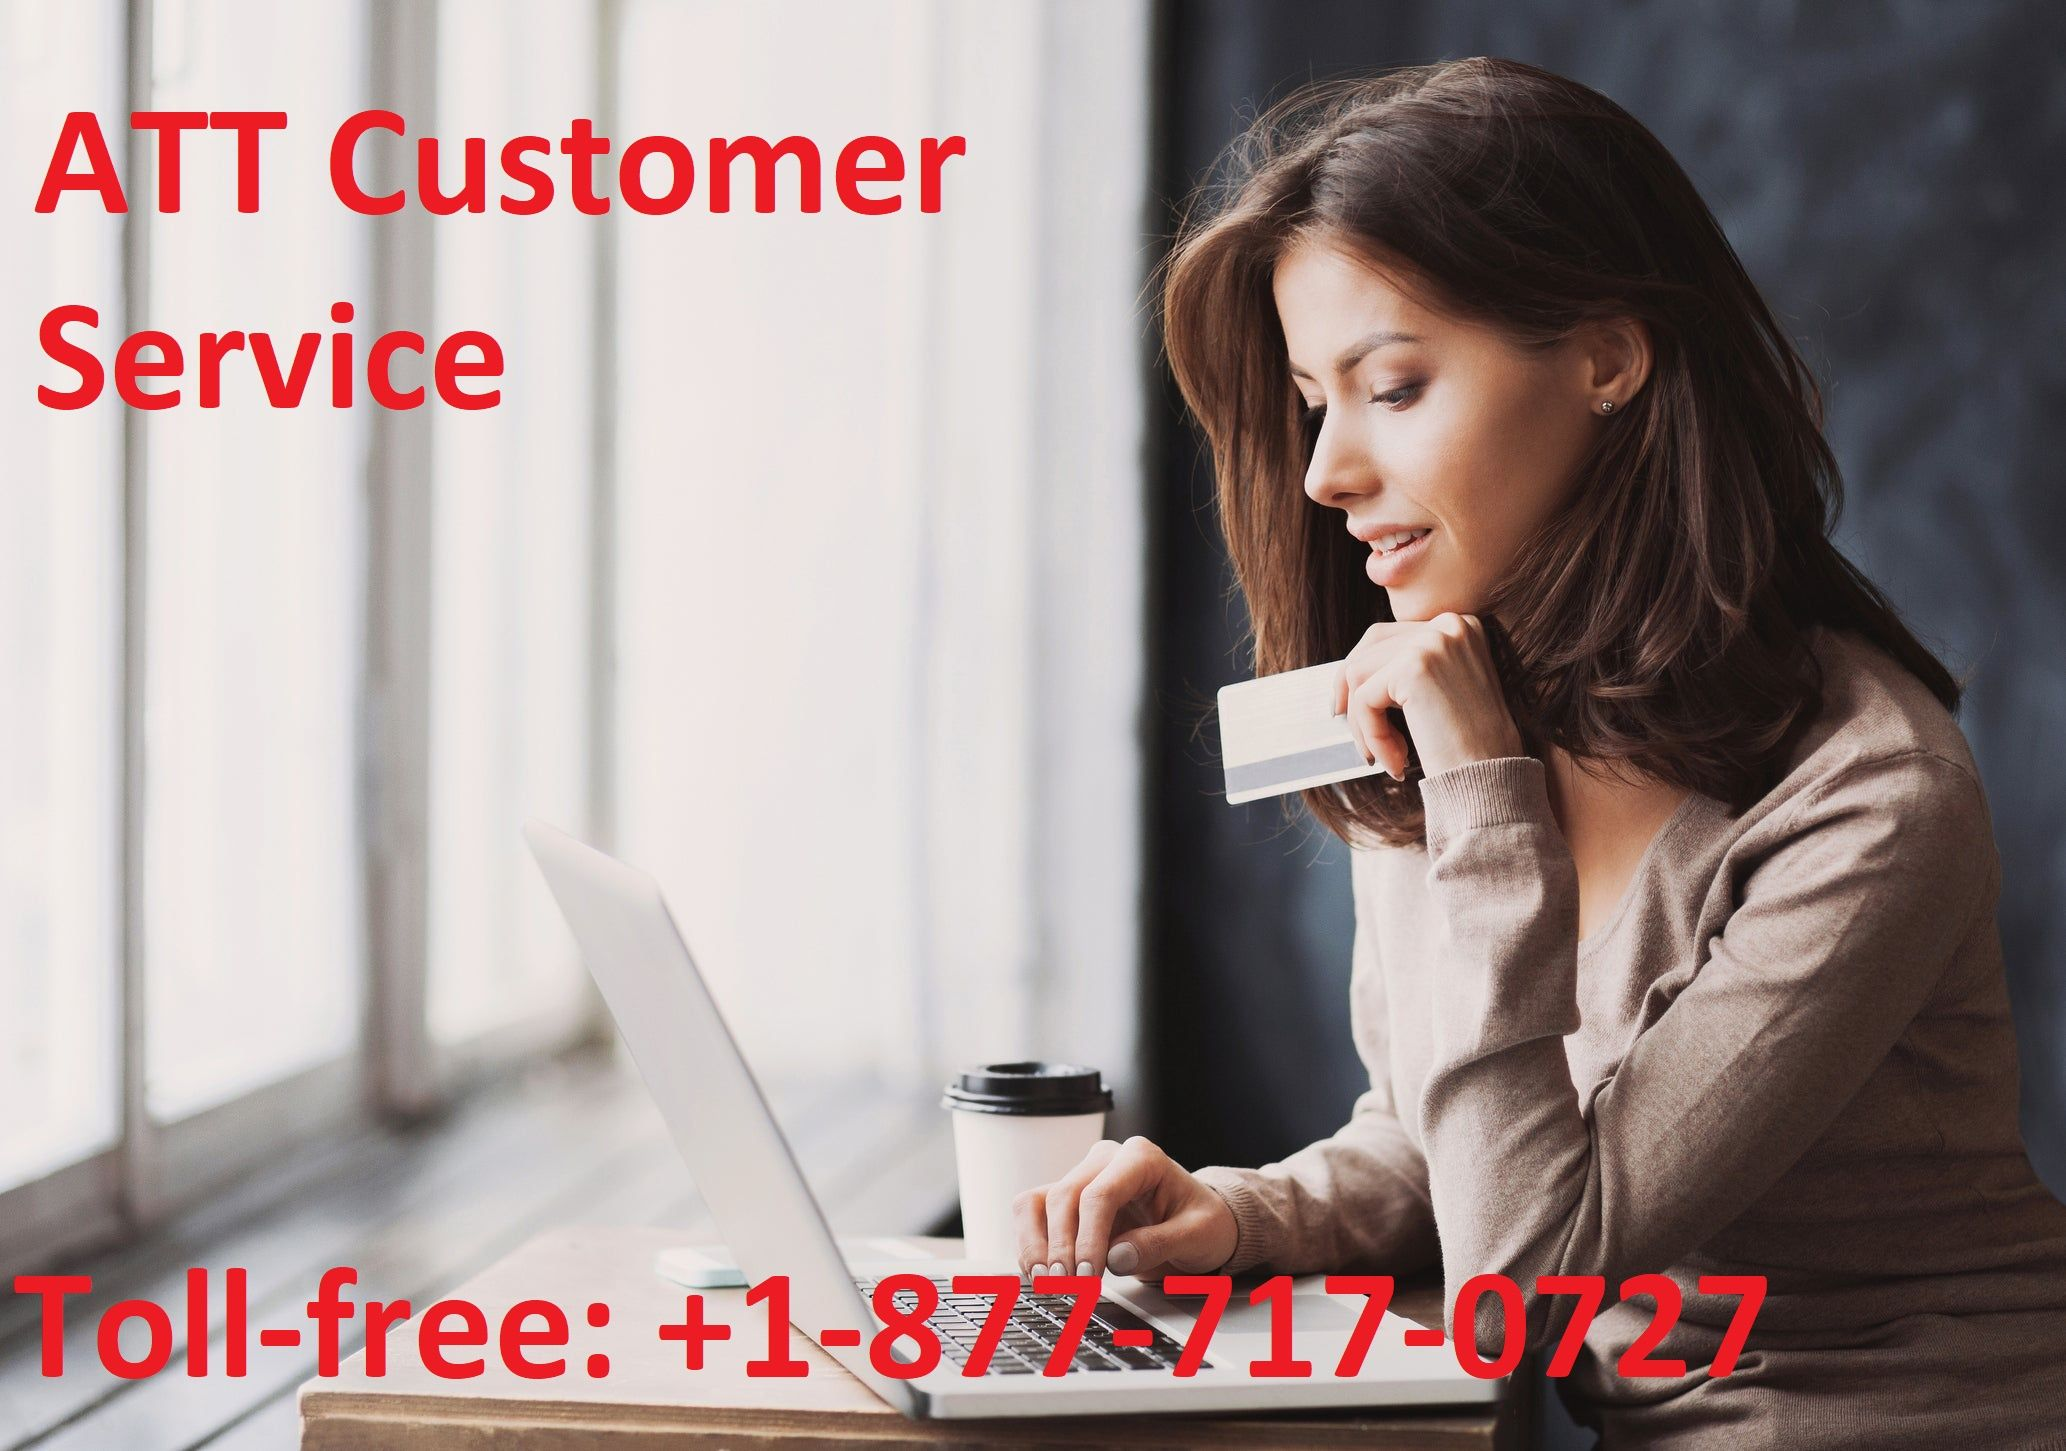 ATT Customer Service in 2020 (With images) Customer